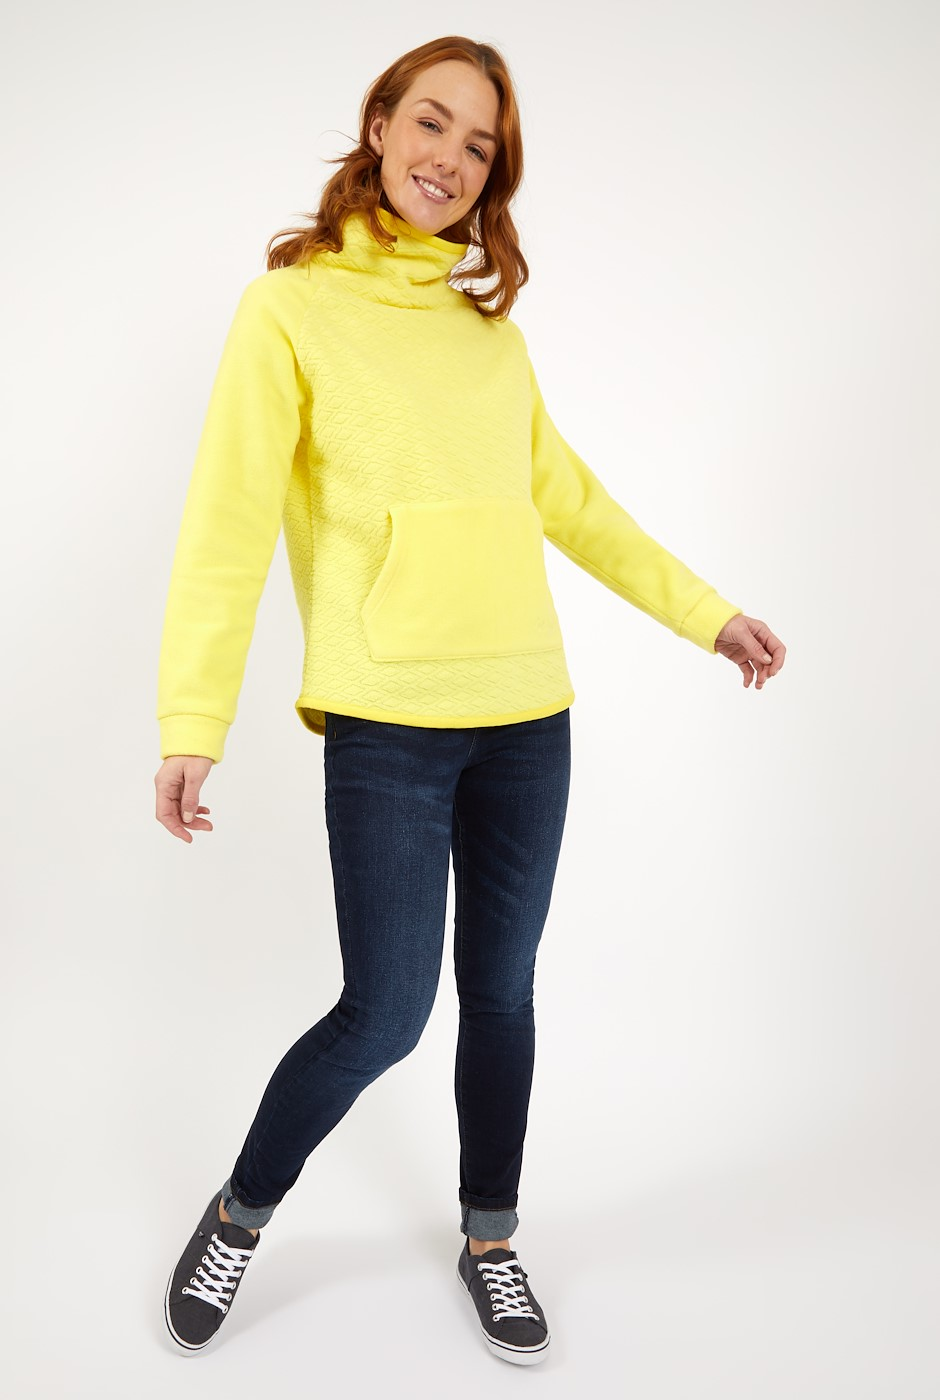 Sallca Popover Diamond Microfleece Lemon